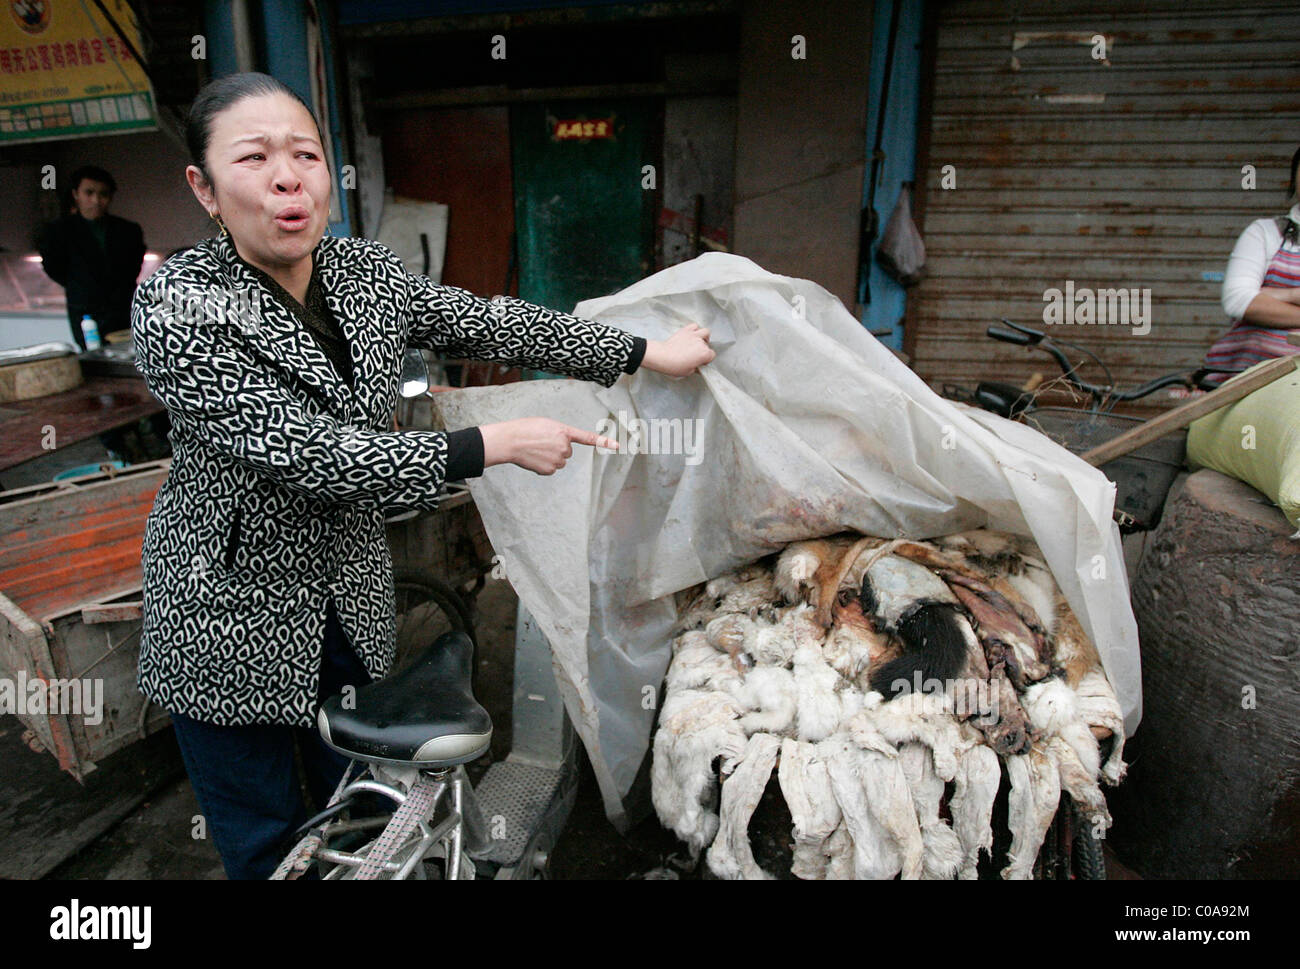 CHINA BLASTED AFTER DOG SLAUGHTER Animal-rights ... - photo#33